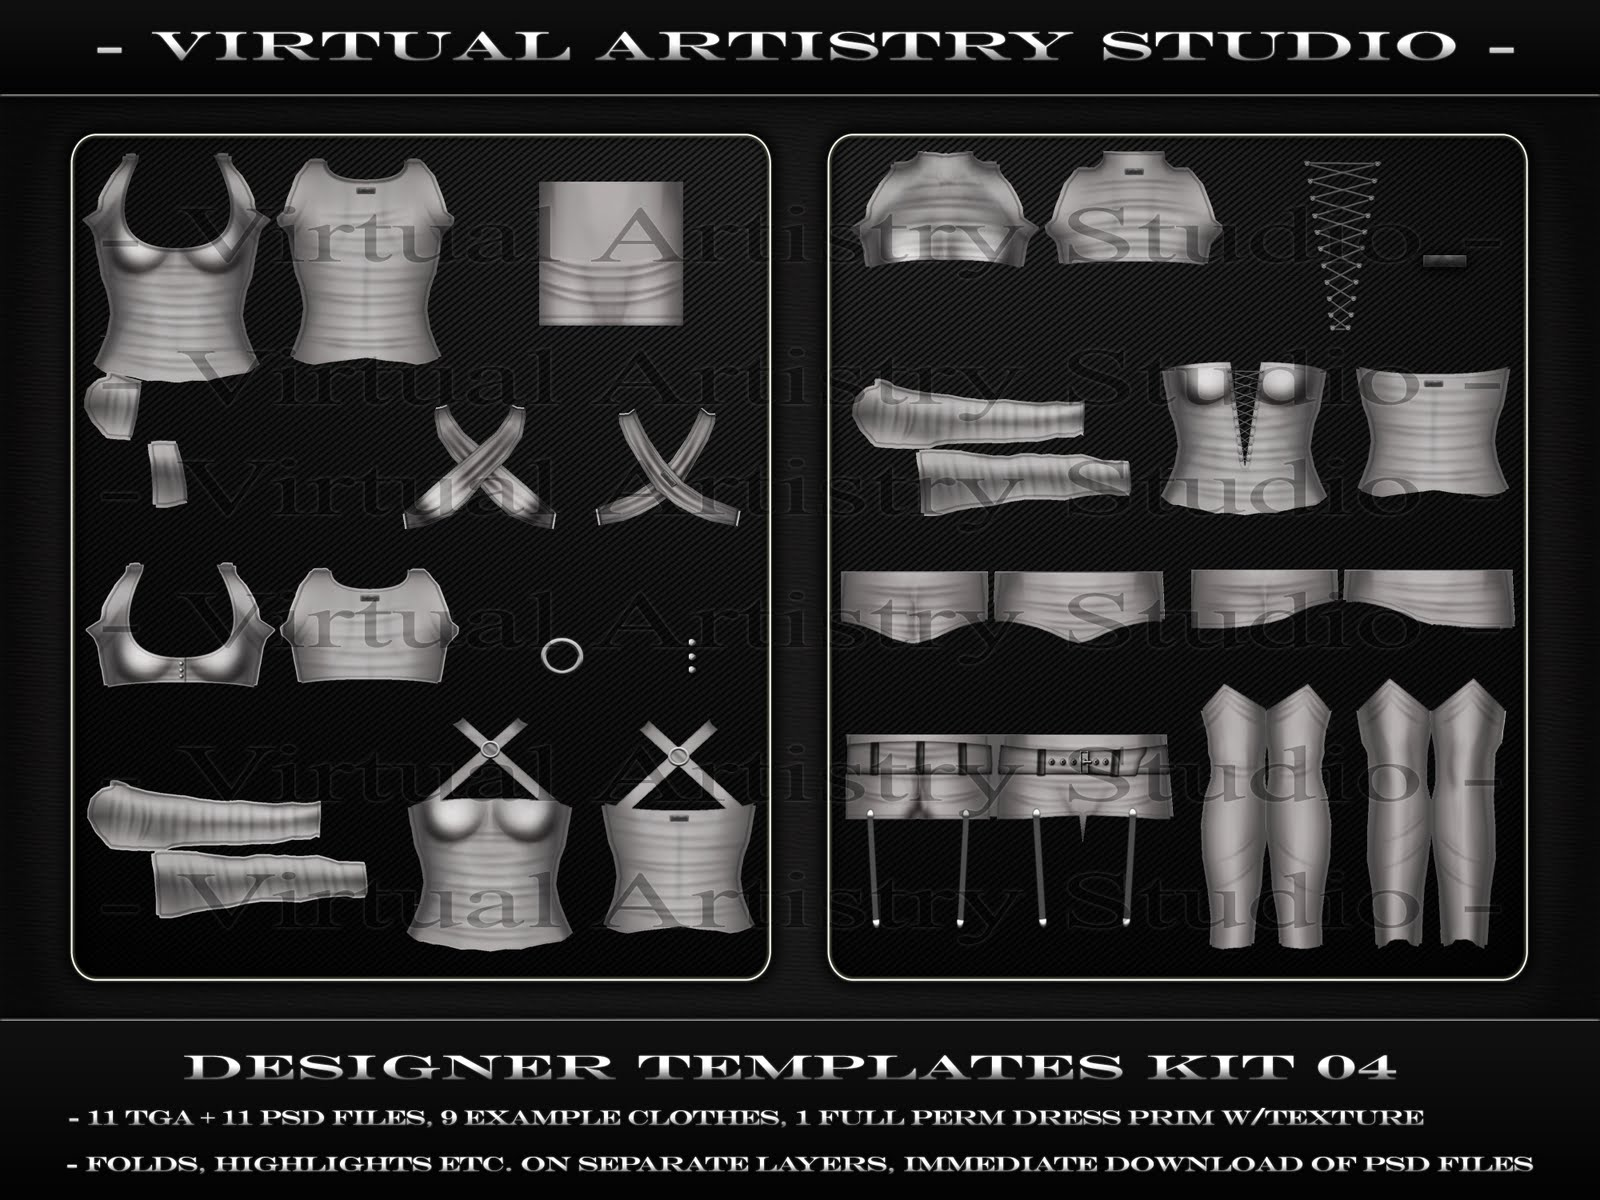 Virtual artistry studio designer templates kit 04 for Second life templates for gimp